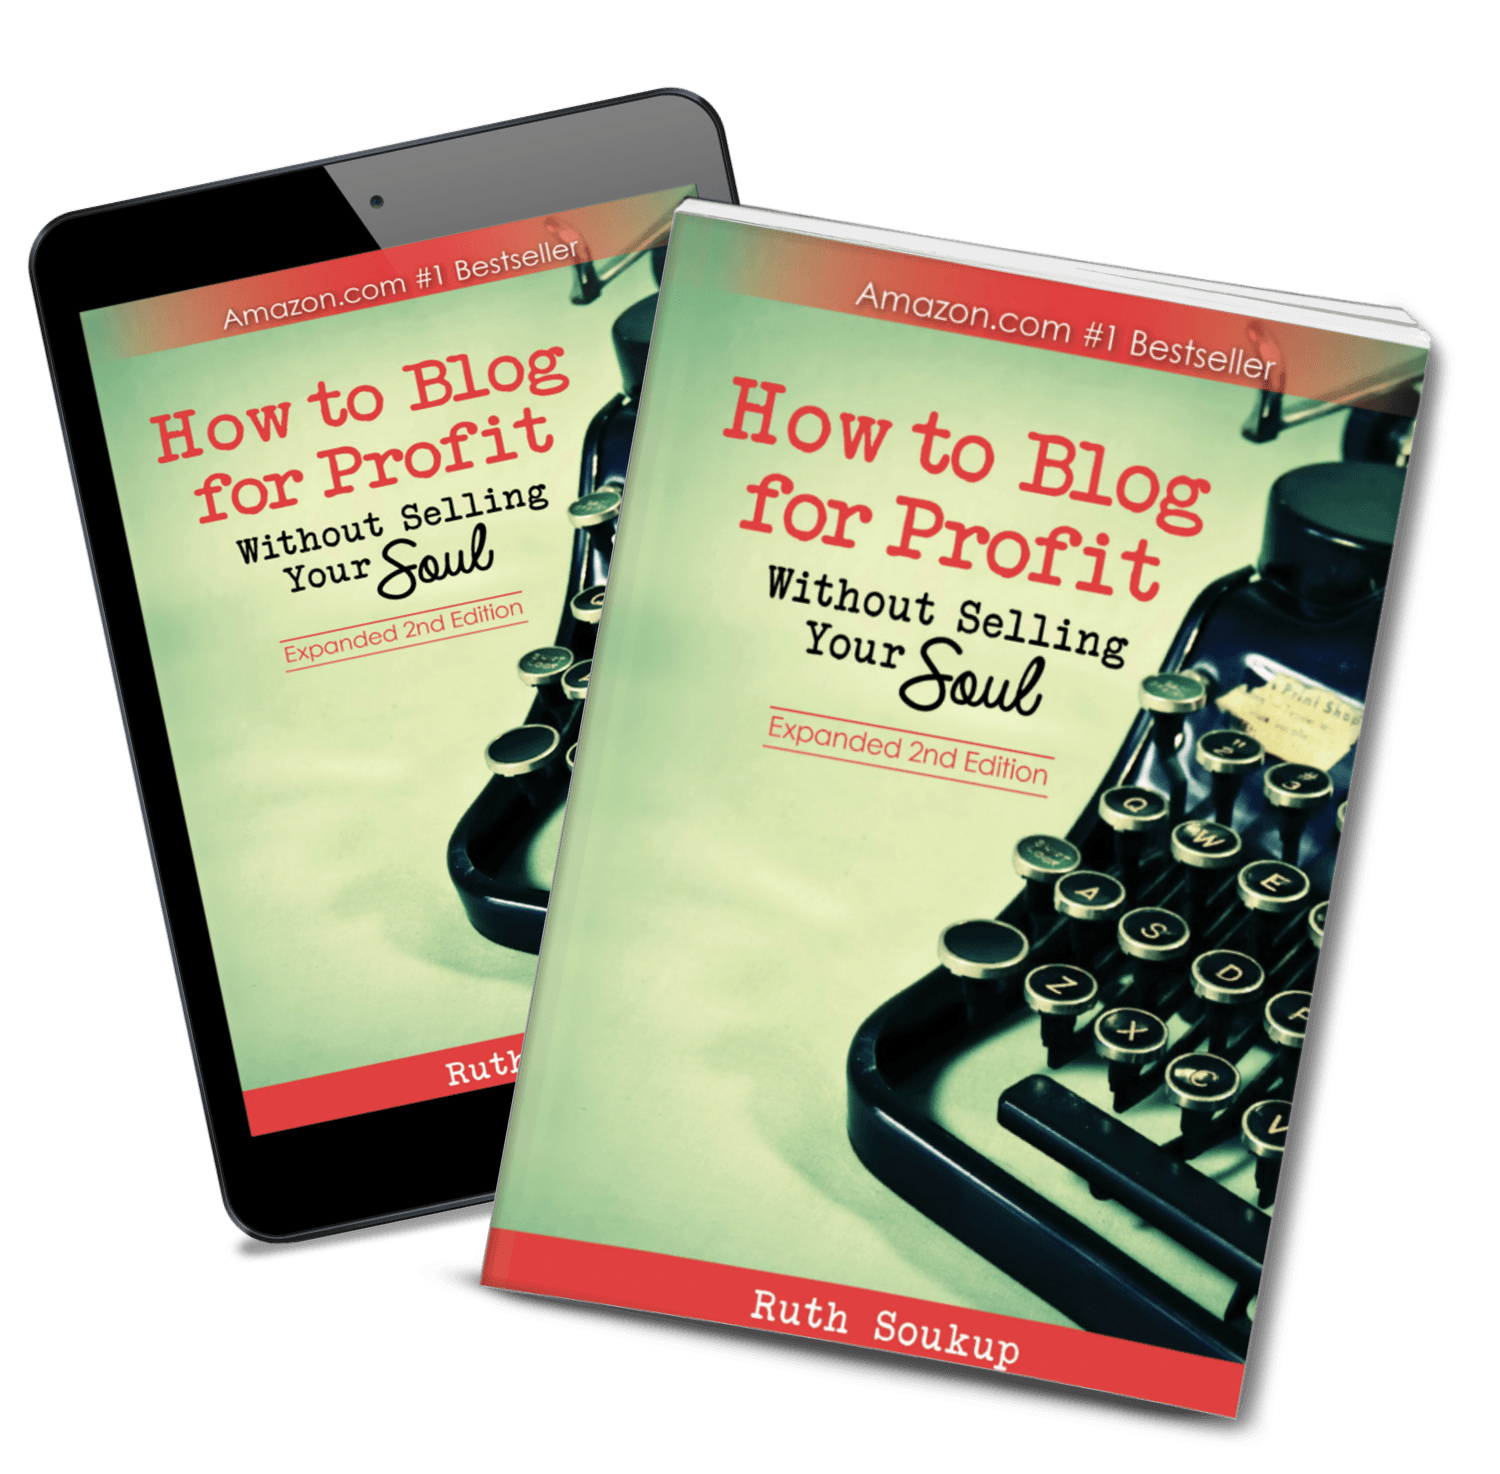 How to Blog for Profit both Formats